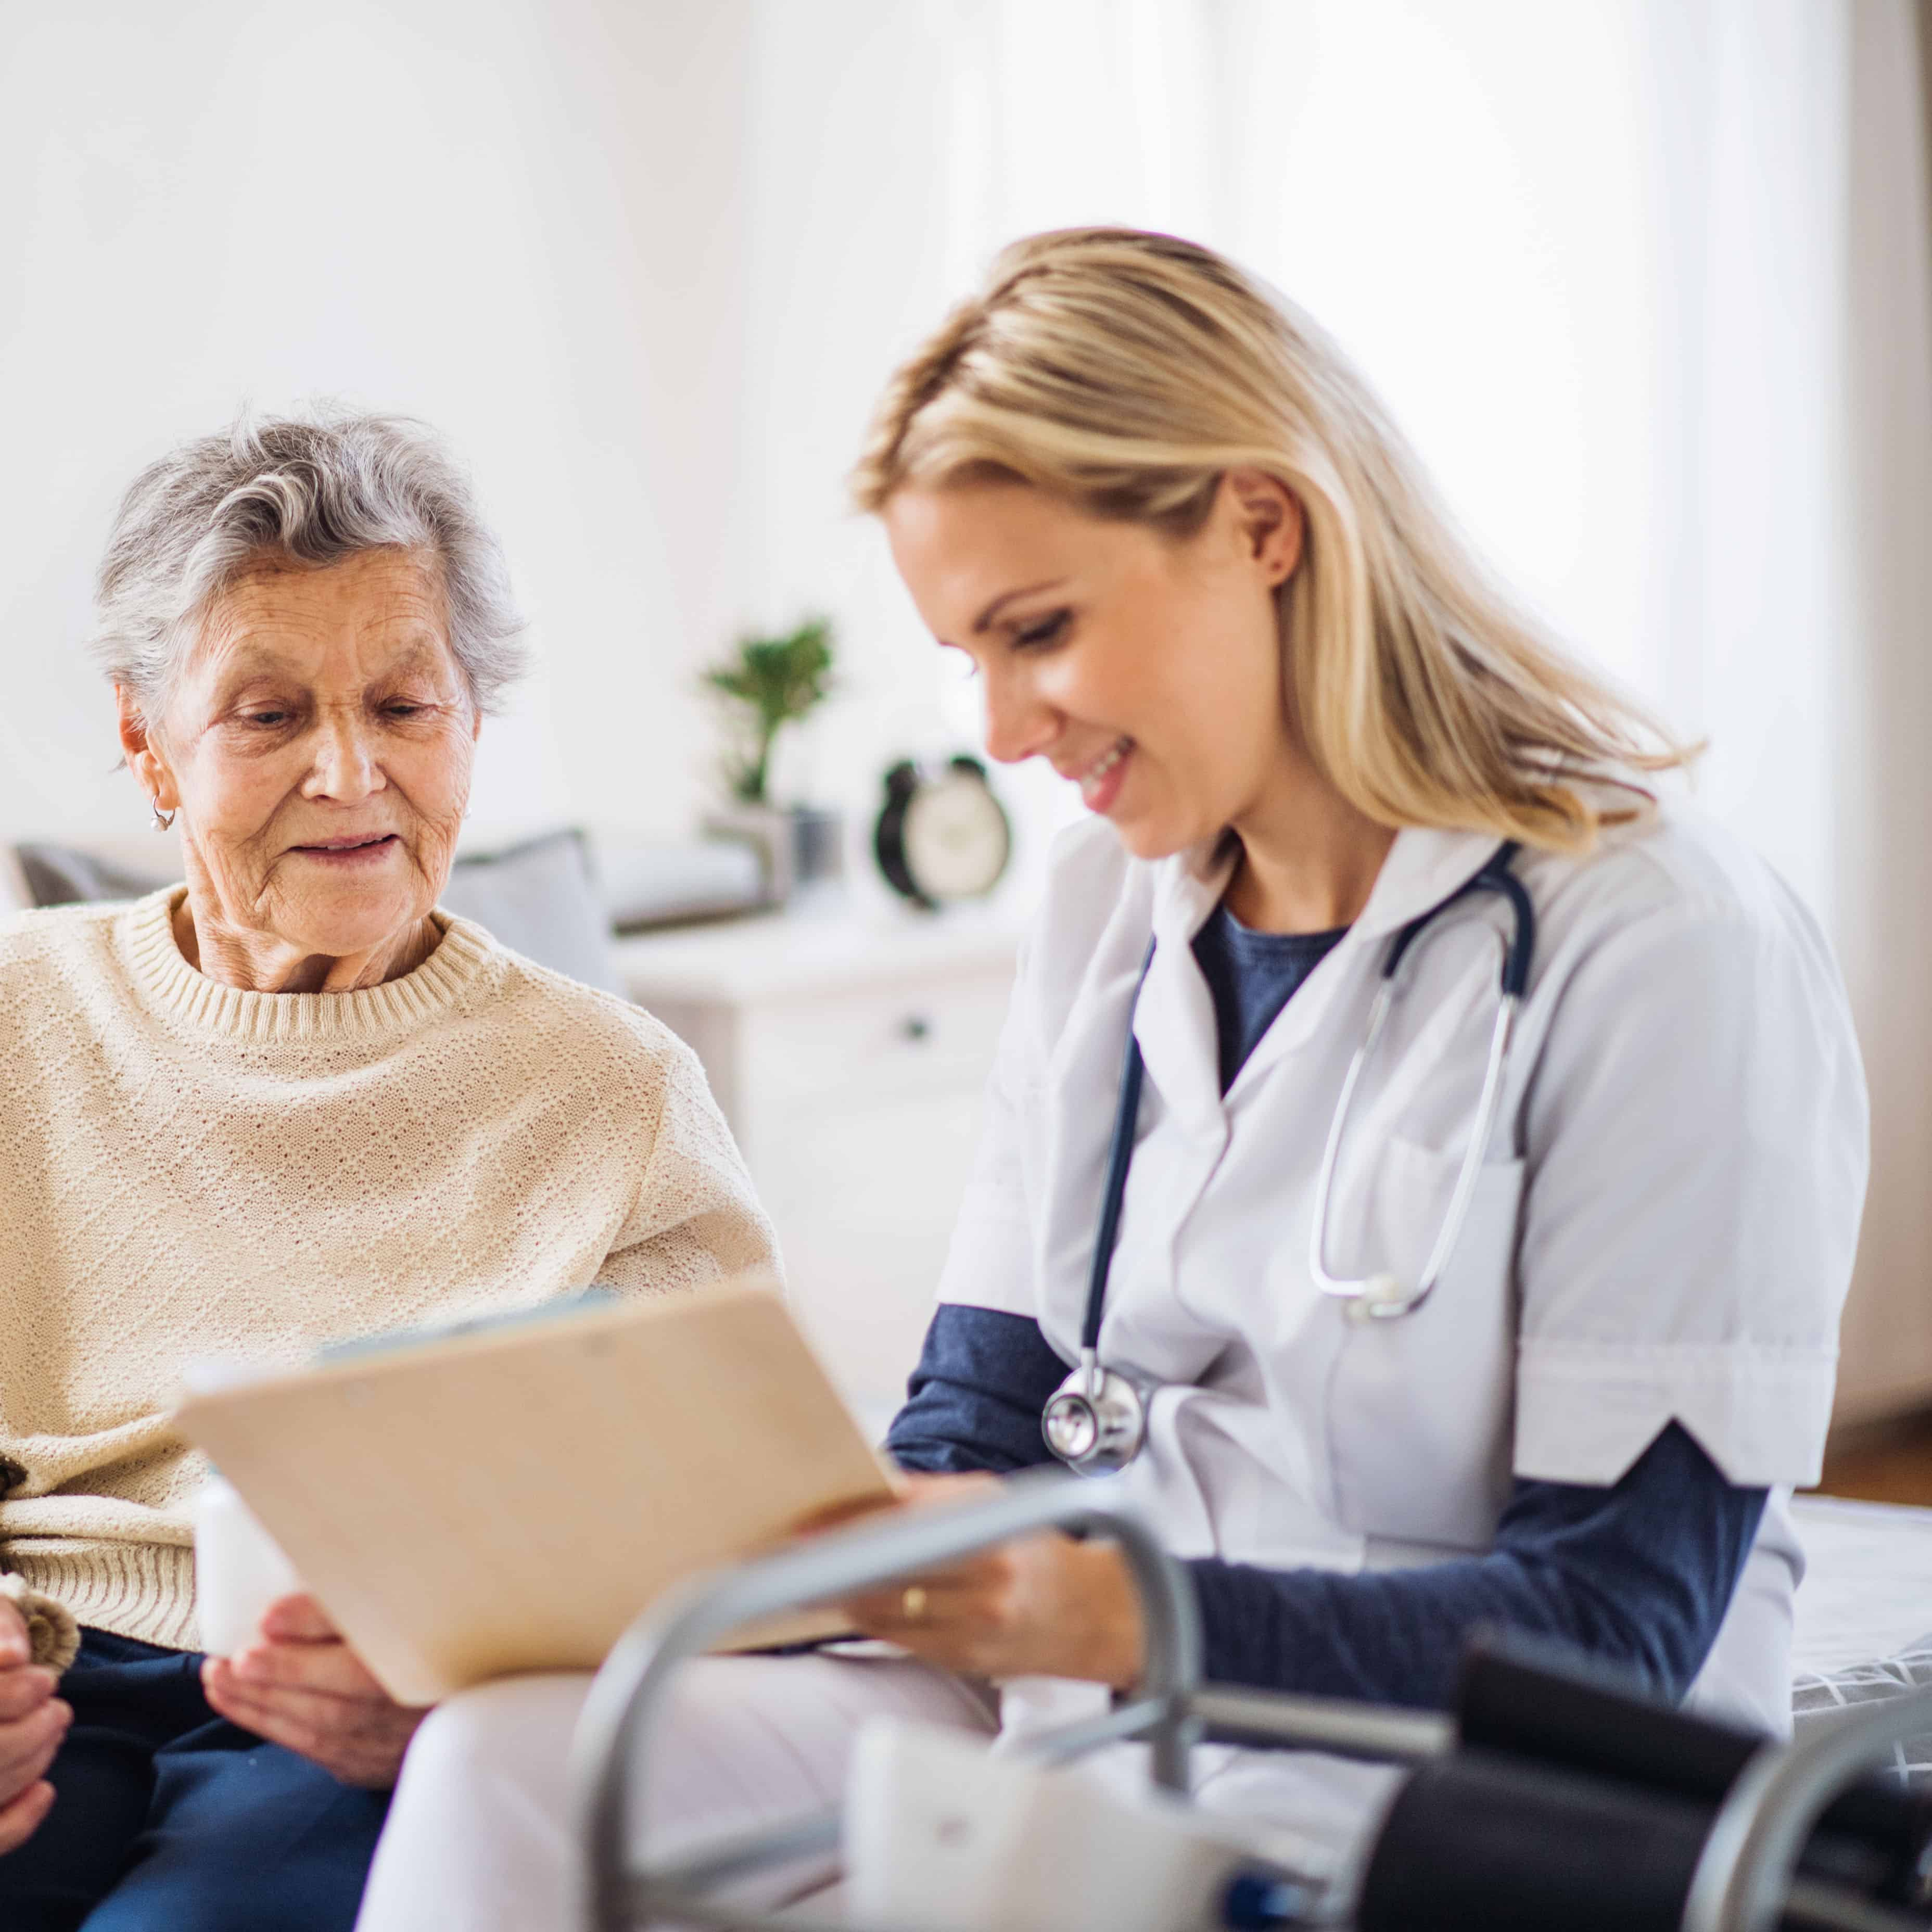 IT Support and Services for Aged Care